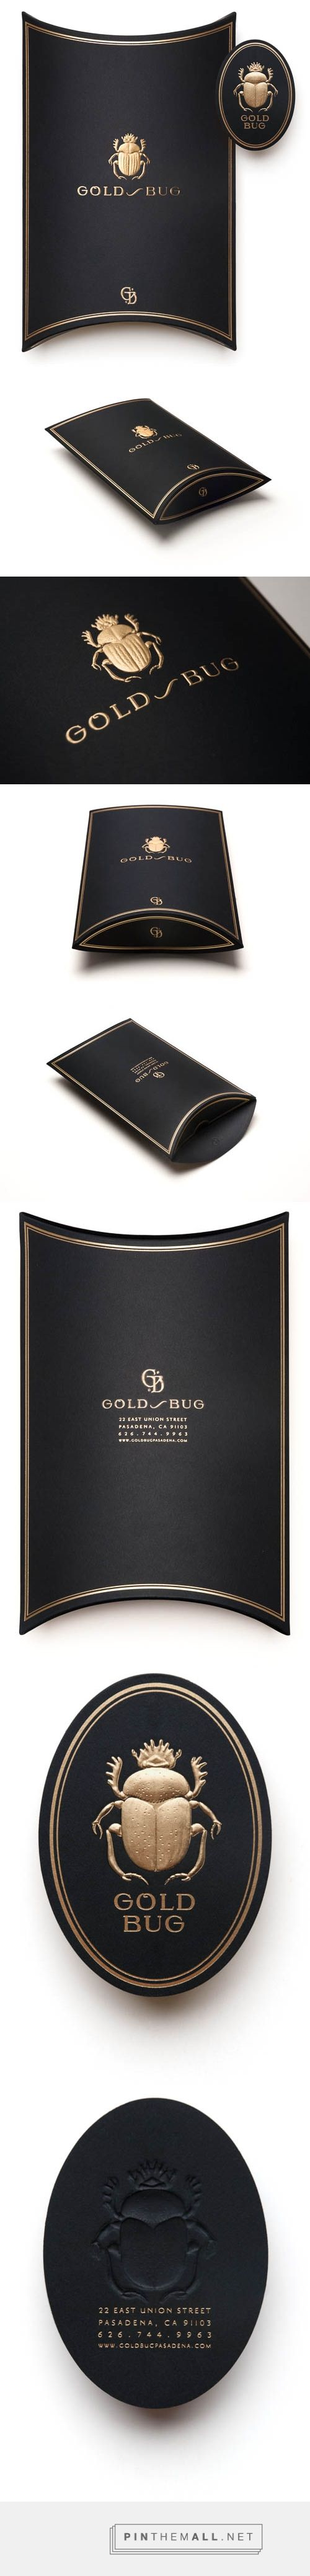 Pressure printing Gold Bug identity design. Look how gorgeous this embossed/debossed #packaging is curated by Packaging Diva PD created via http://blog.pressureprinting.com/post/68906012107/gold-bug-identity-design